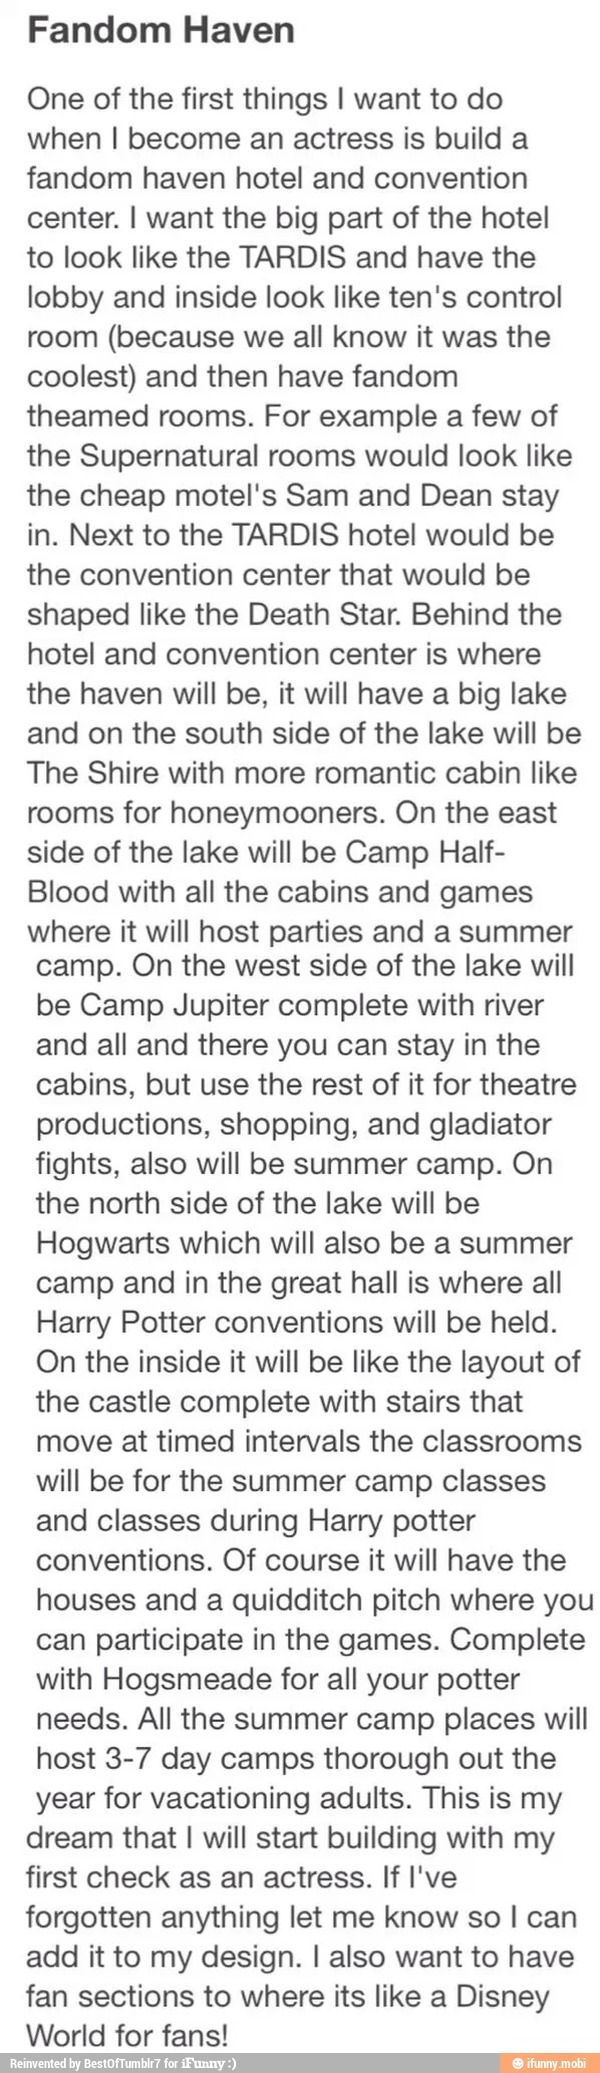 This is one of the best things I've ever seen.<<Someone NEEDS to make this happen!>>>OMG I WOULD GO THERE AND I WOULD LOVE IT<< I WOULD DO THIS except i need to become an actress :( (i want to!)>>> YASS PLEASE!